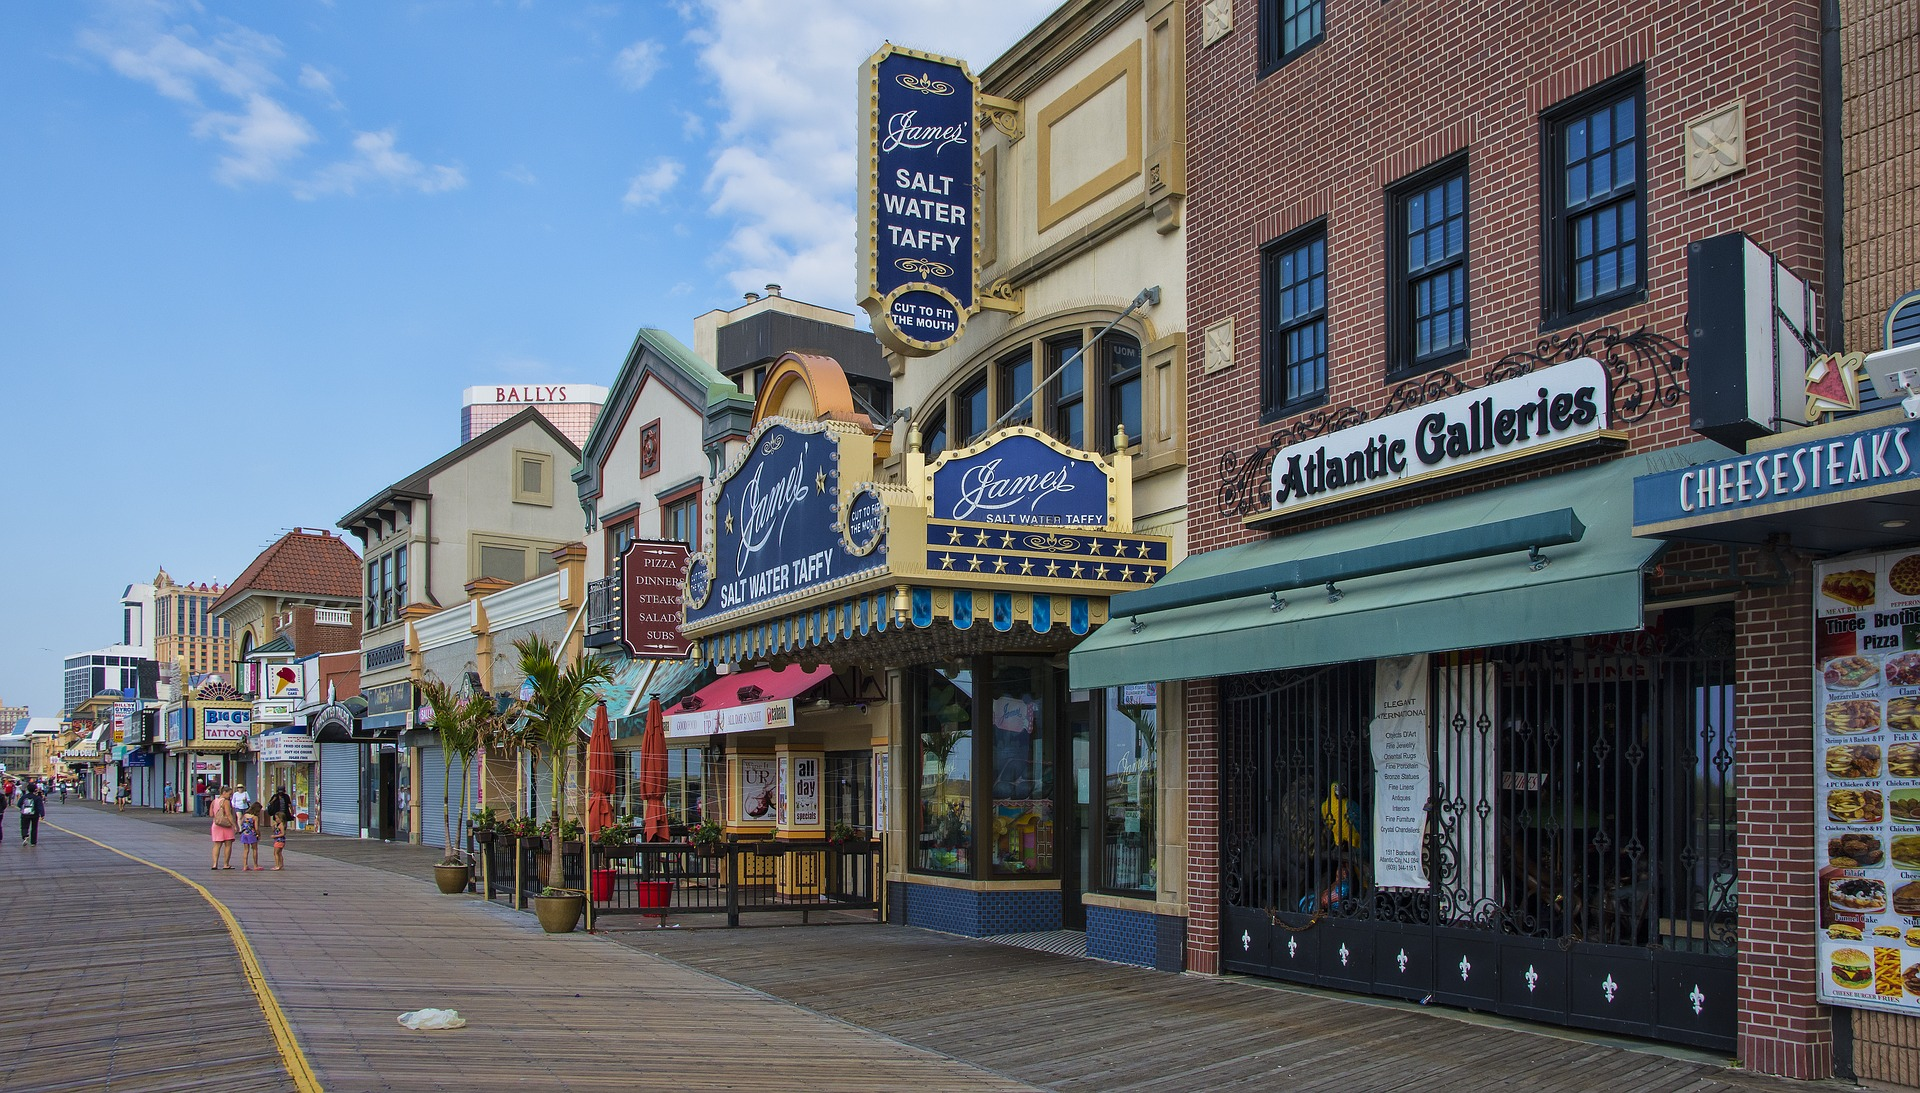 The Boardwalk - Top Attractions to Visit in Atlantic City Besides Gambling